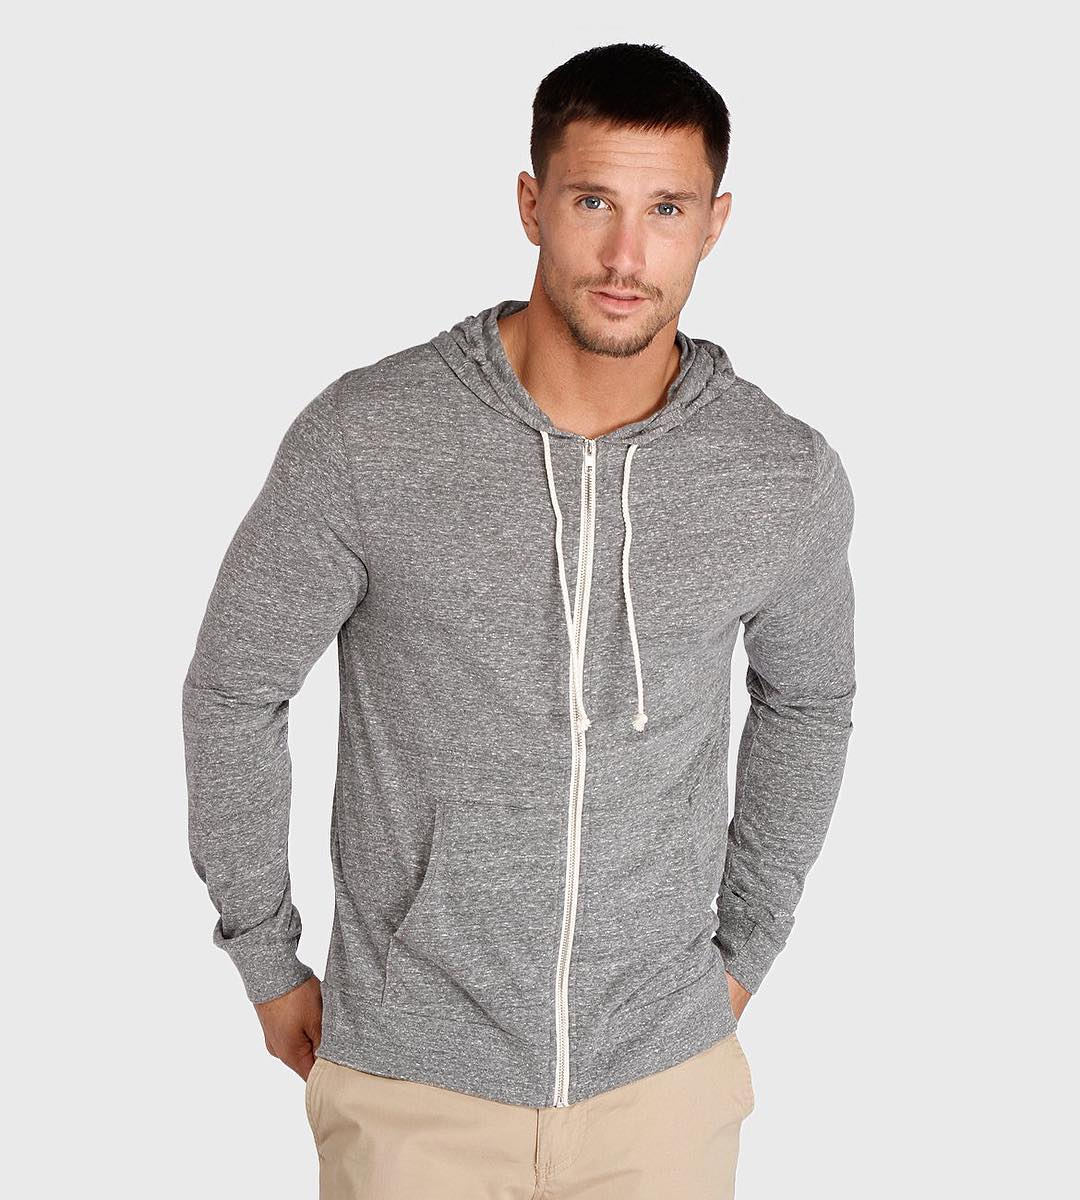 Mother nature isn't the only one confused with this in between weather. It's not tee shirt time, but most days are not freezing either. The Zip Front Tee Shirt Hoodie is your new best friend this season! (Link in bio to shop)#mensfashion #zipup #hoodie...